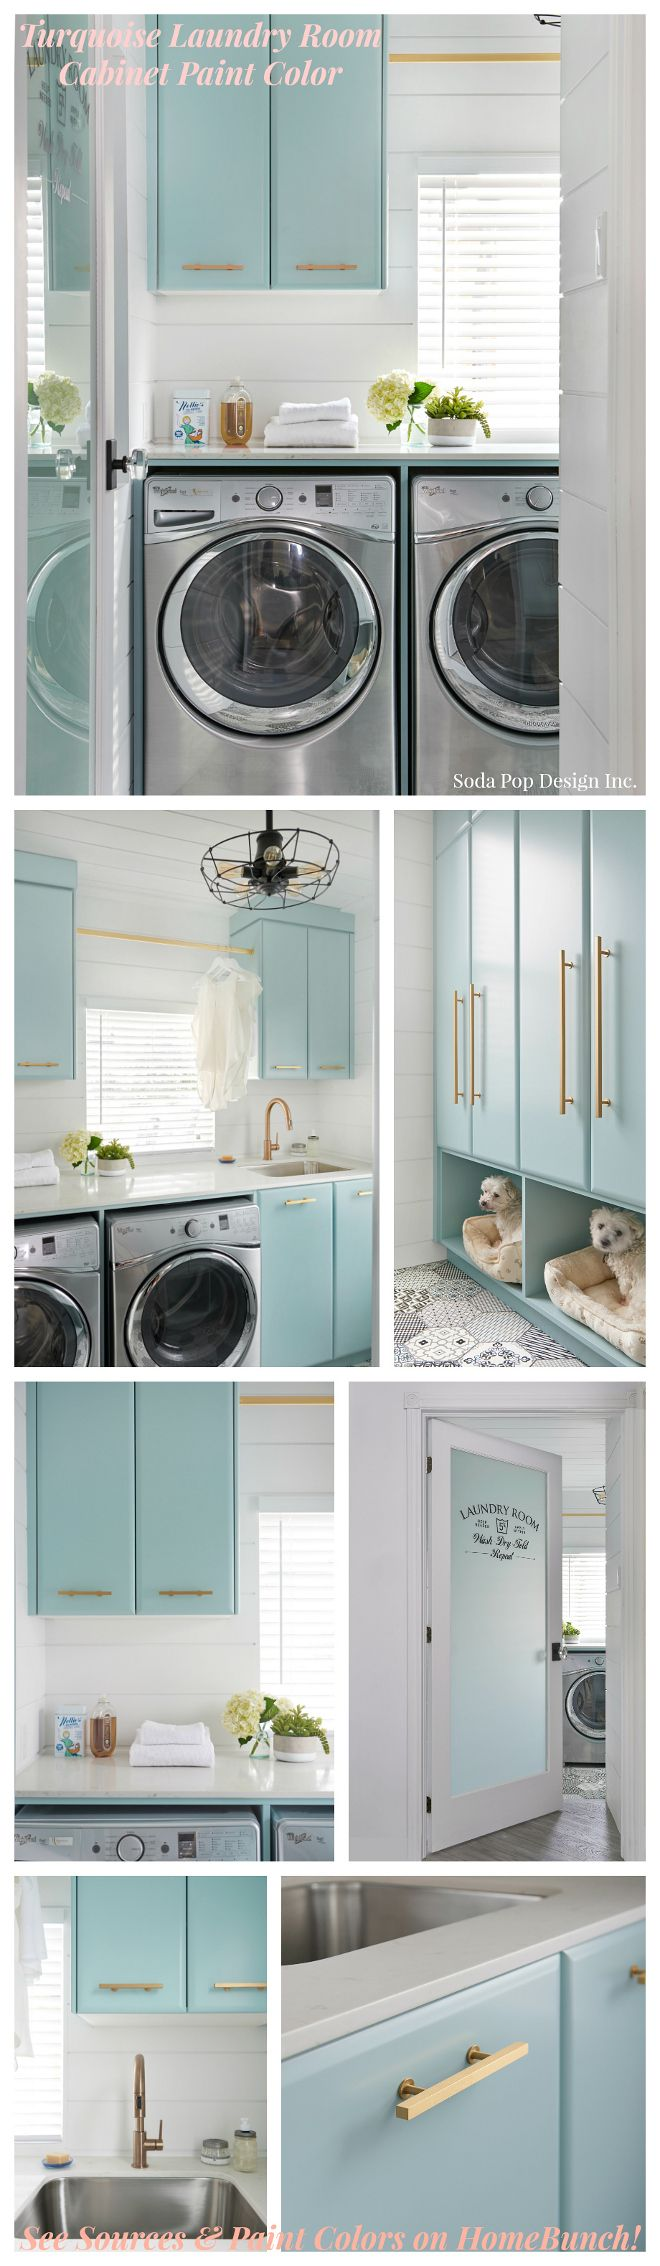 Turquoise Laundry Room Cabinet Paint Color. See Sources and Paint Color on Home Bunch